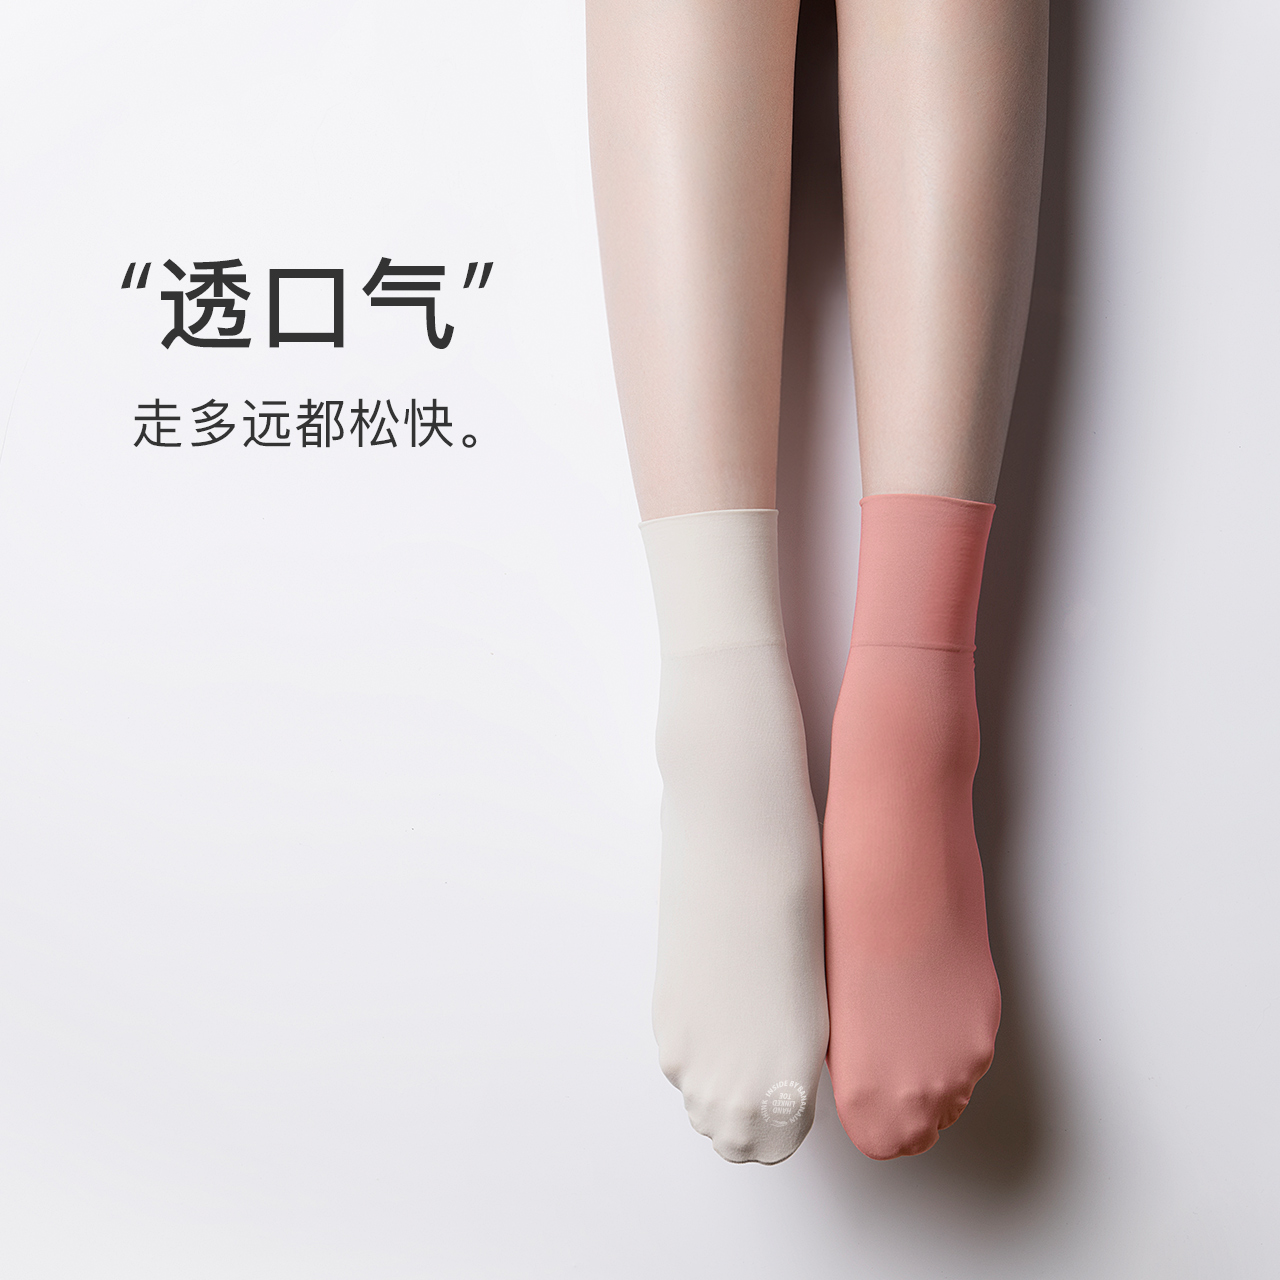 Four pairs of Bananain Bananain 500H Lady's Colored Silk Socks, Candy Socks, Trendy Women's Slim Short Socks